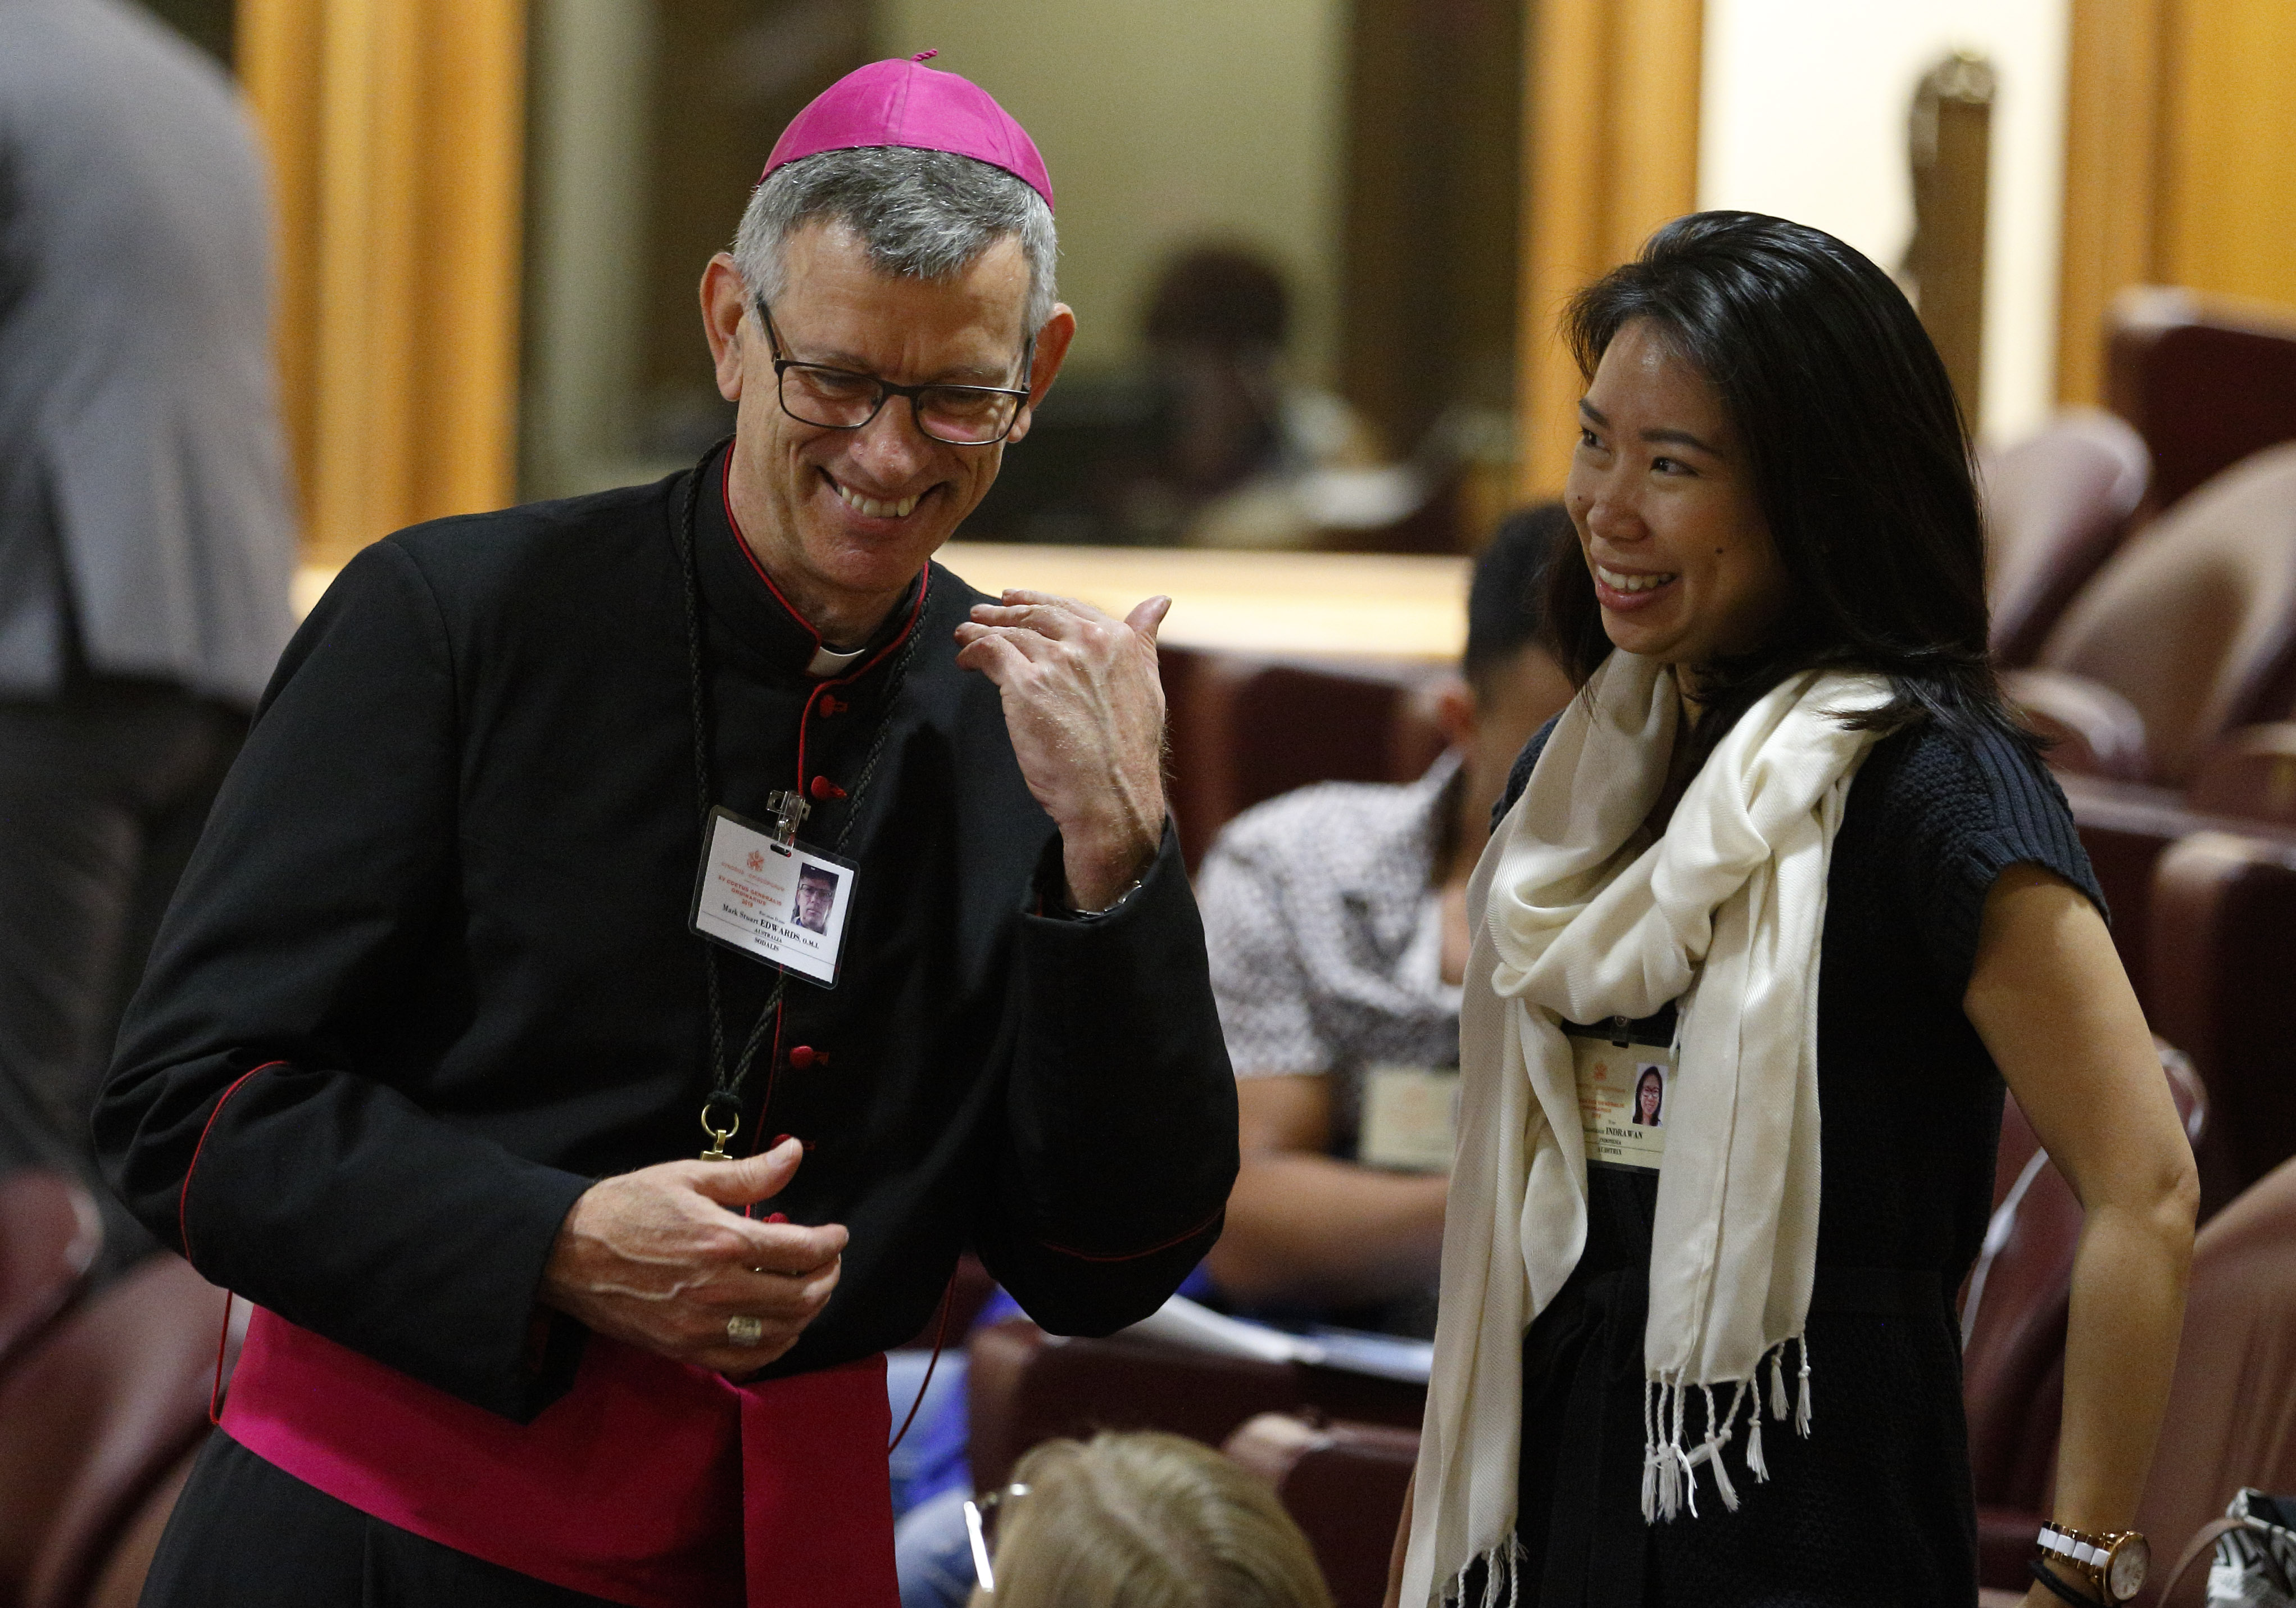 Synod 2018 Day 6: Young people aren't just spectators, 'they